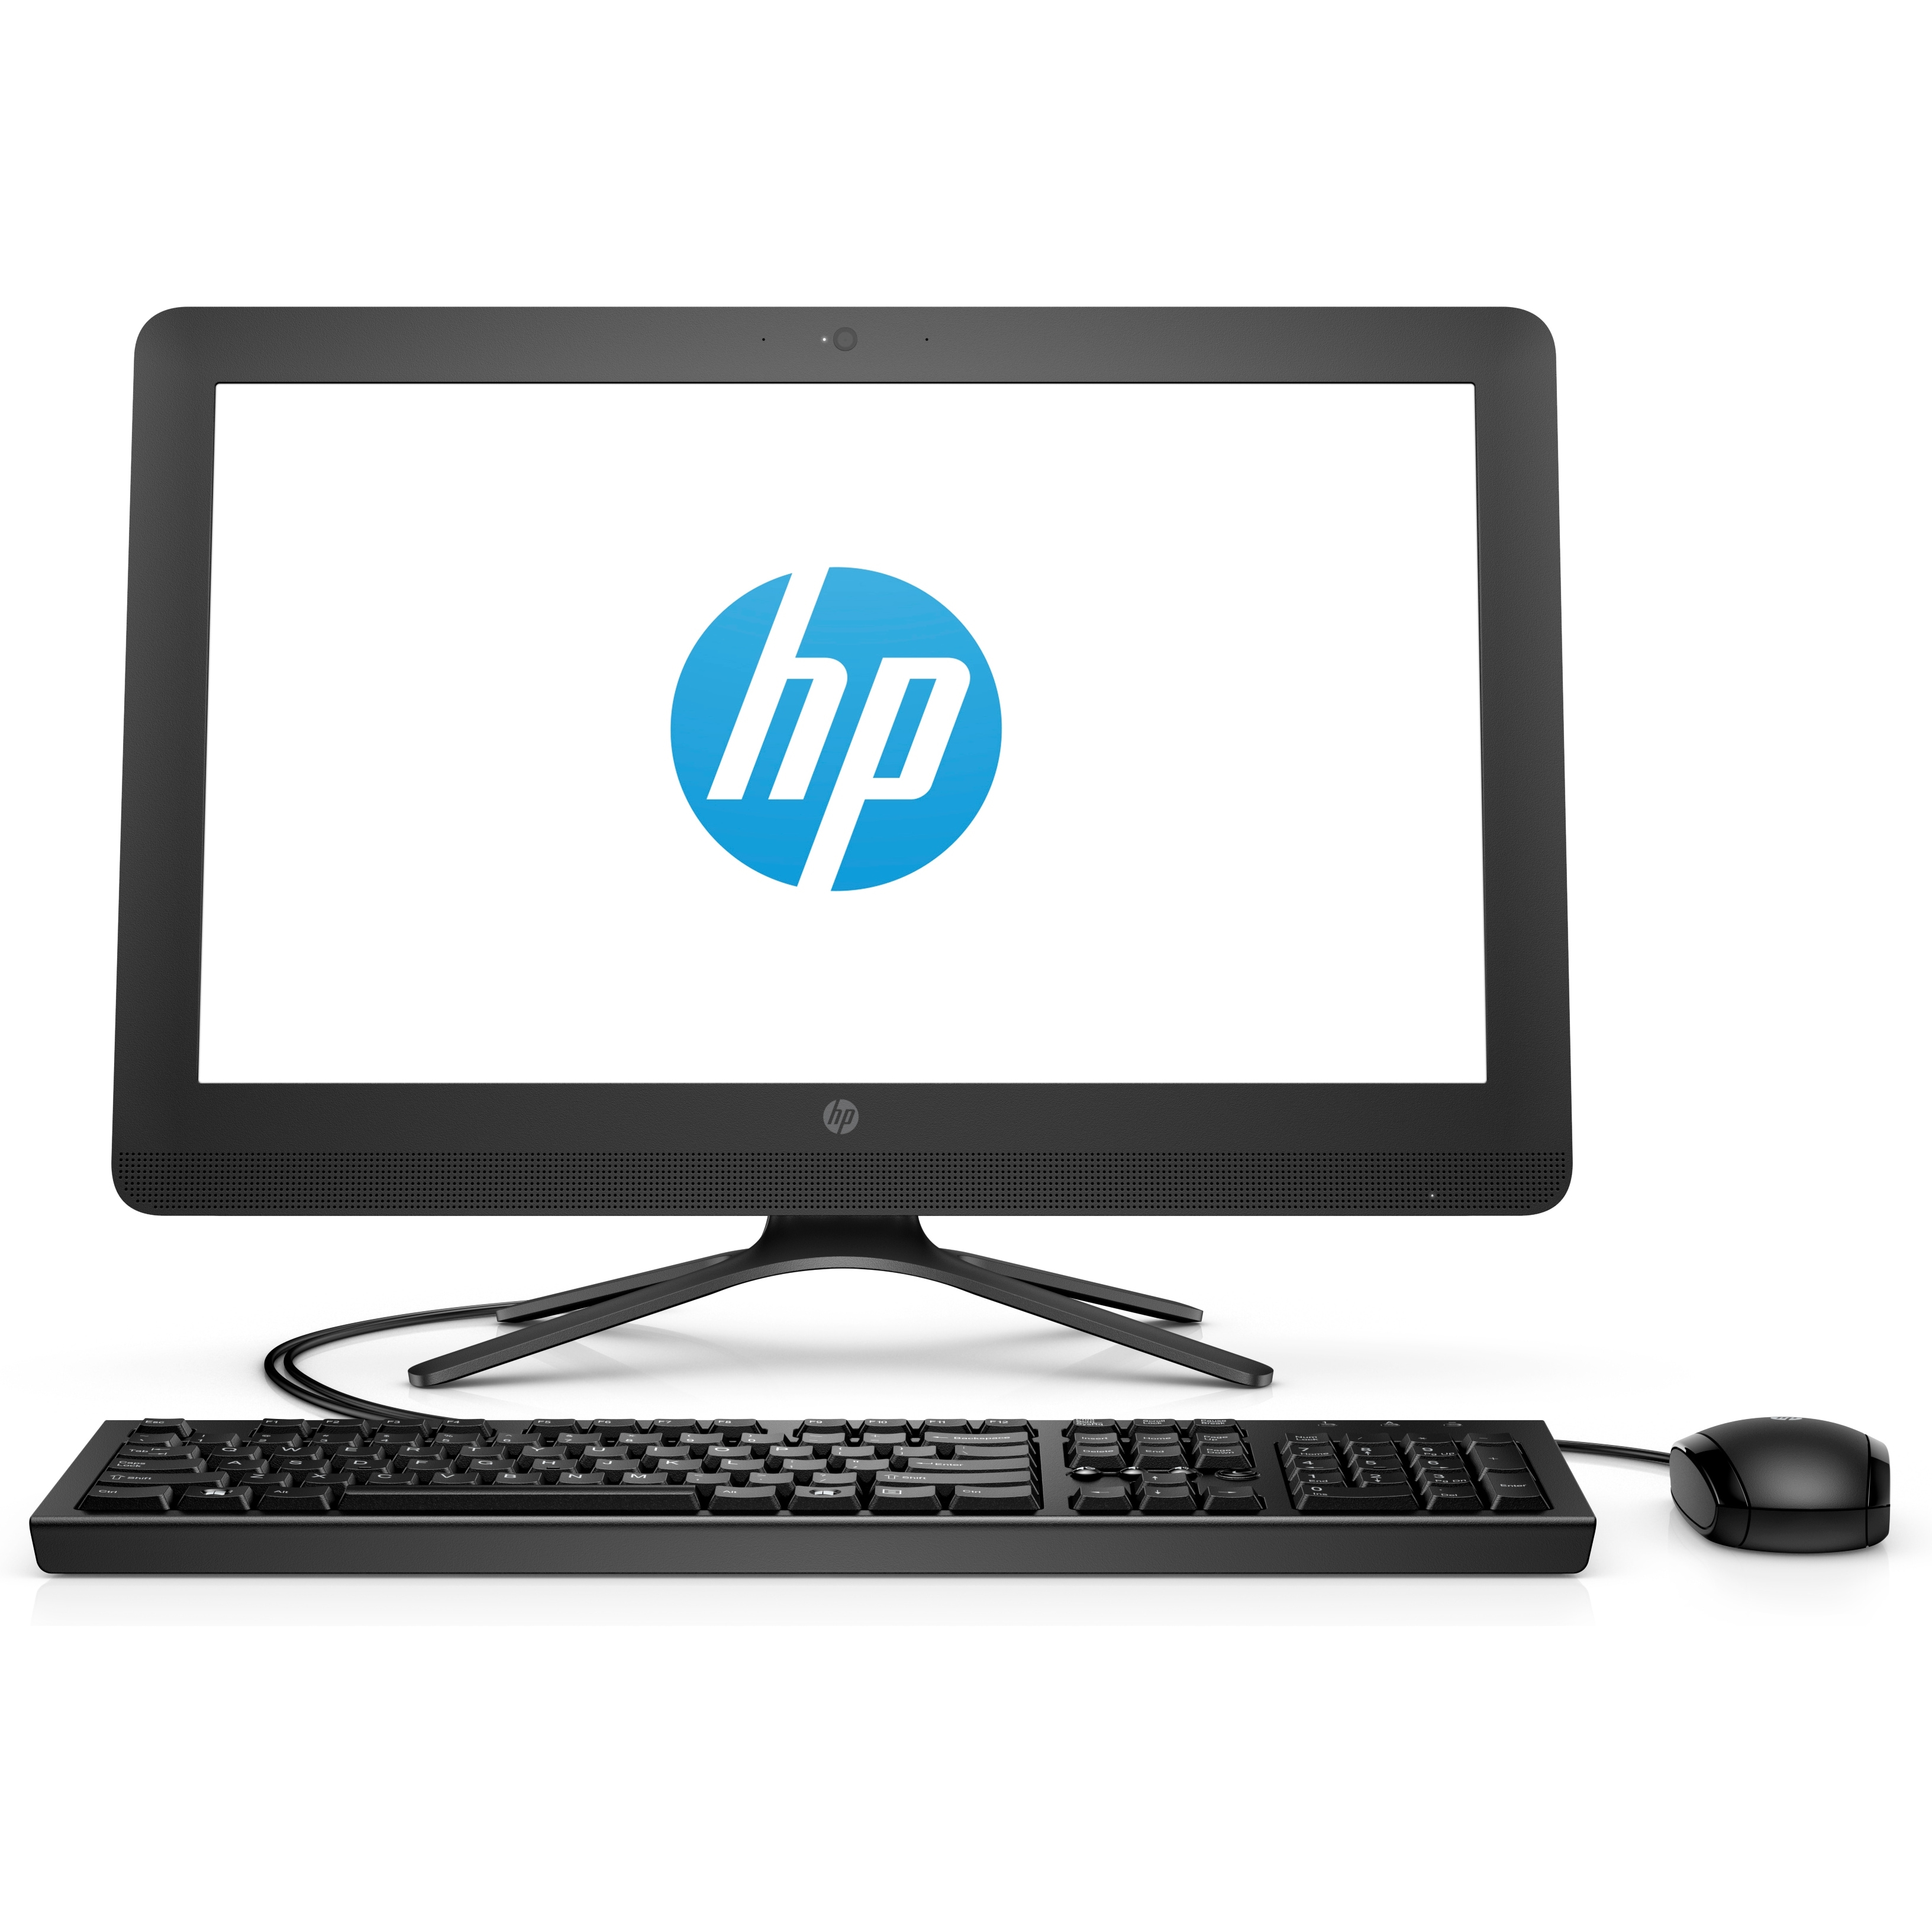 "HP 22-C0036NT 4MM87EA i3-8130U 4GB 256SSD O/B VGA 21.5"" FHD NONTOUCH FREDOOS ALL IN ONE PC"